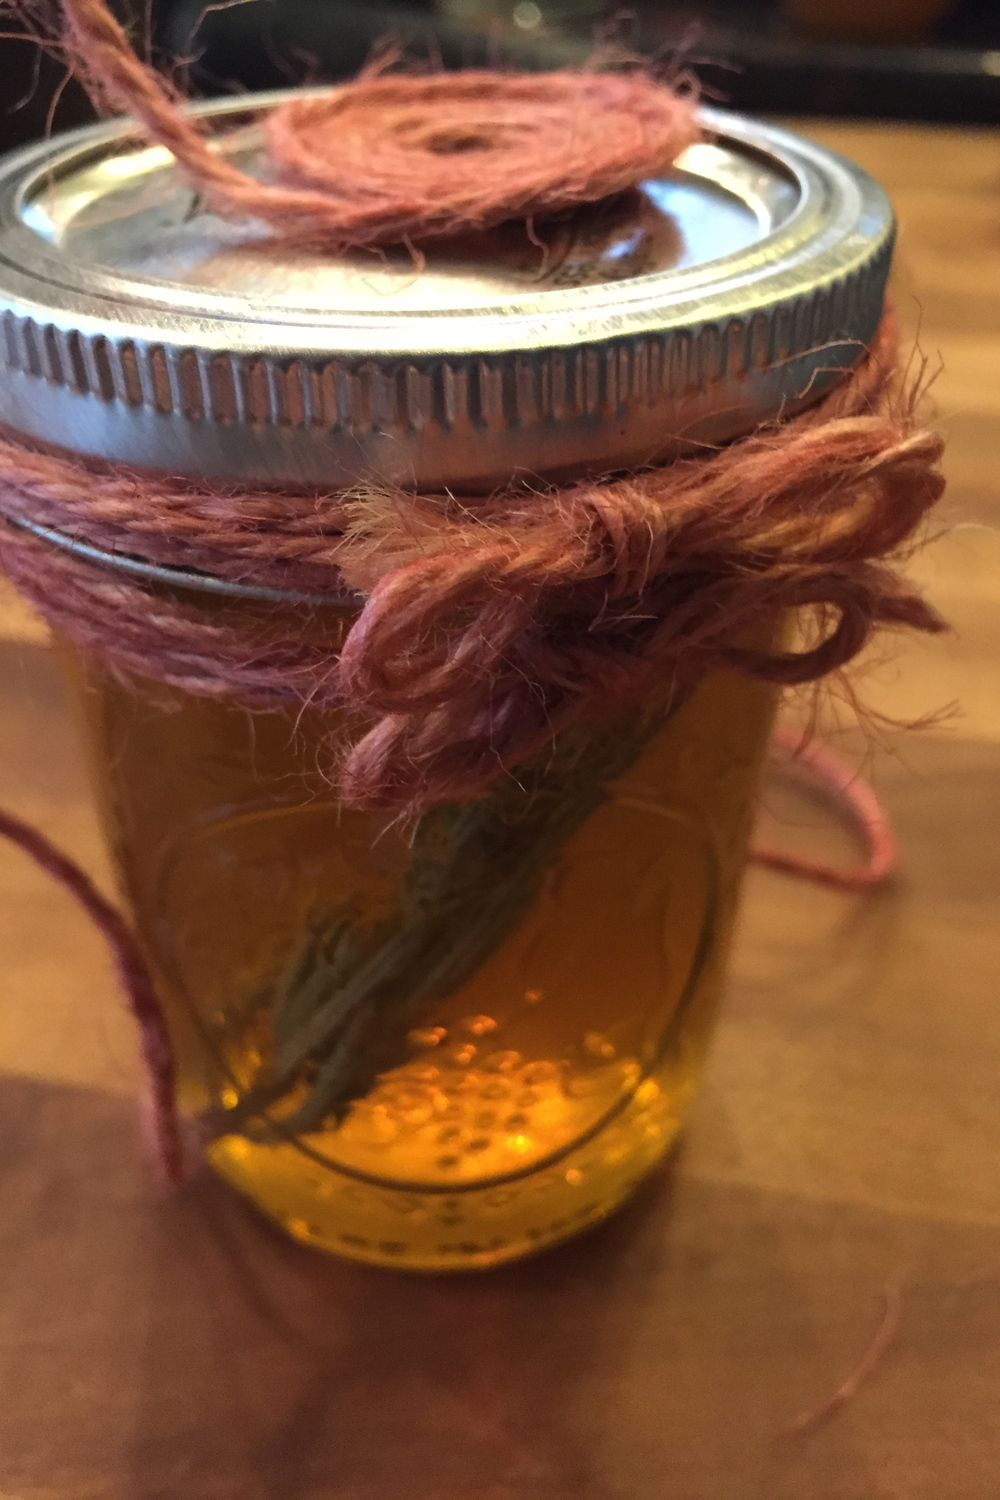 After you tie the twine bows around the jar, then work on the top. This will make designing the top easier. Fill in any gaps by wrapping more twine around the jar and knot.